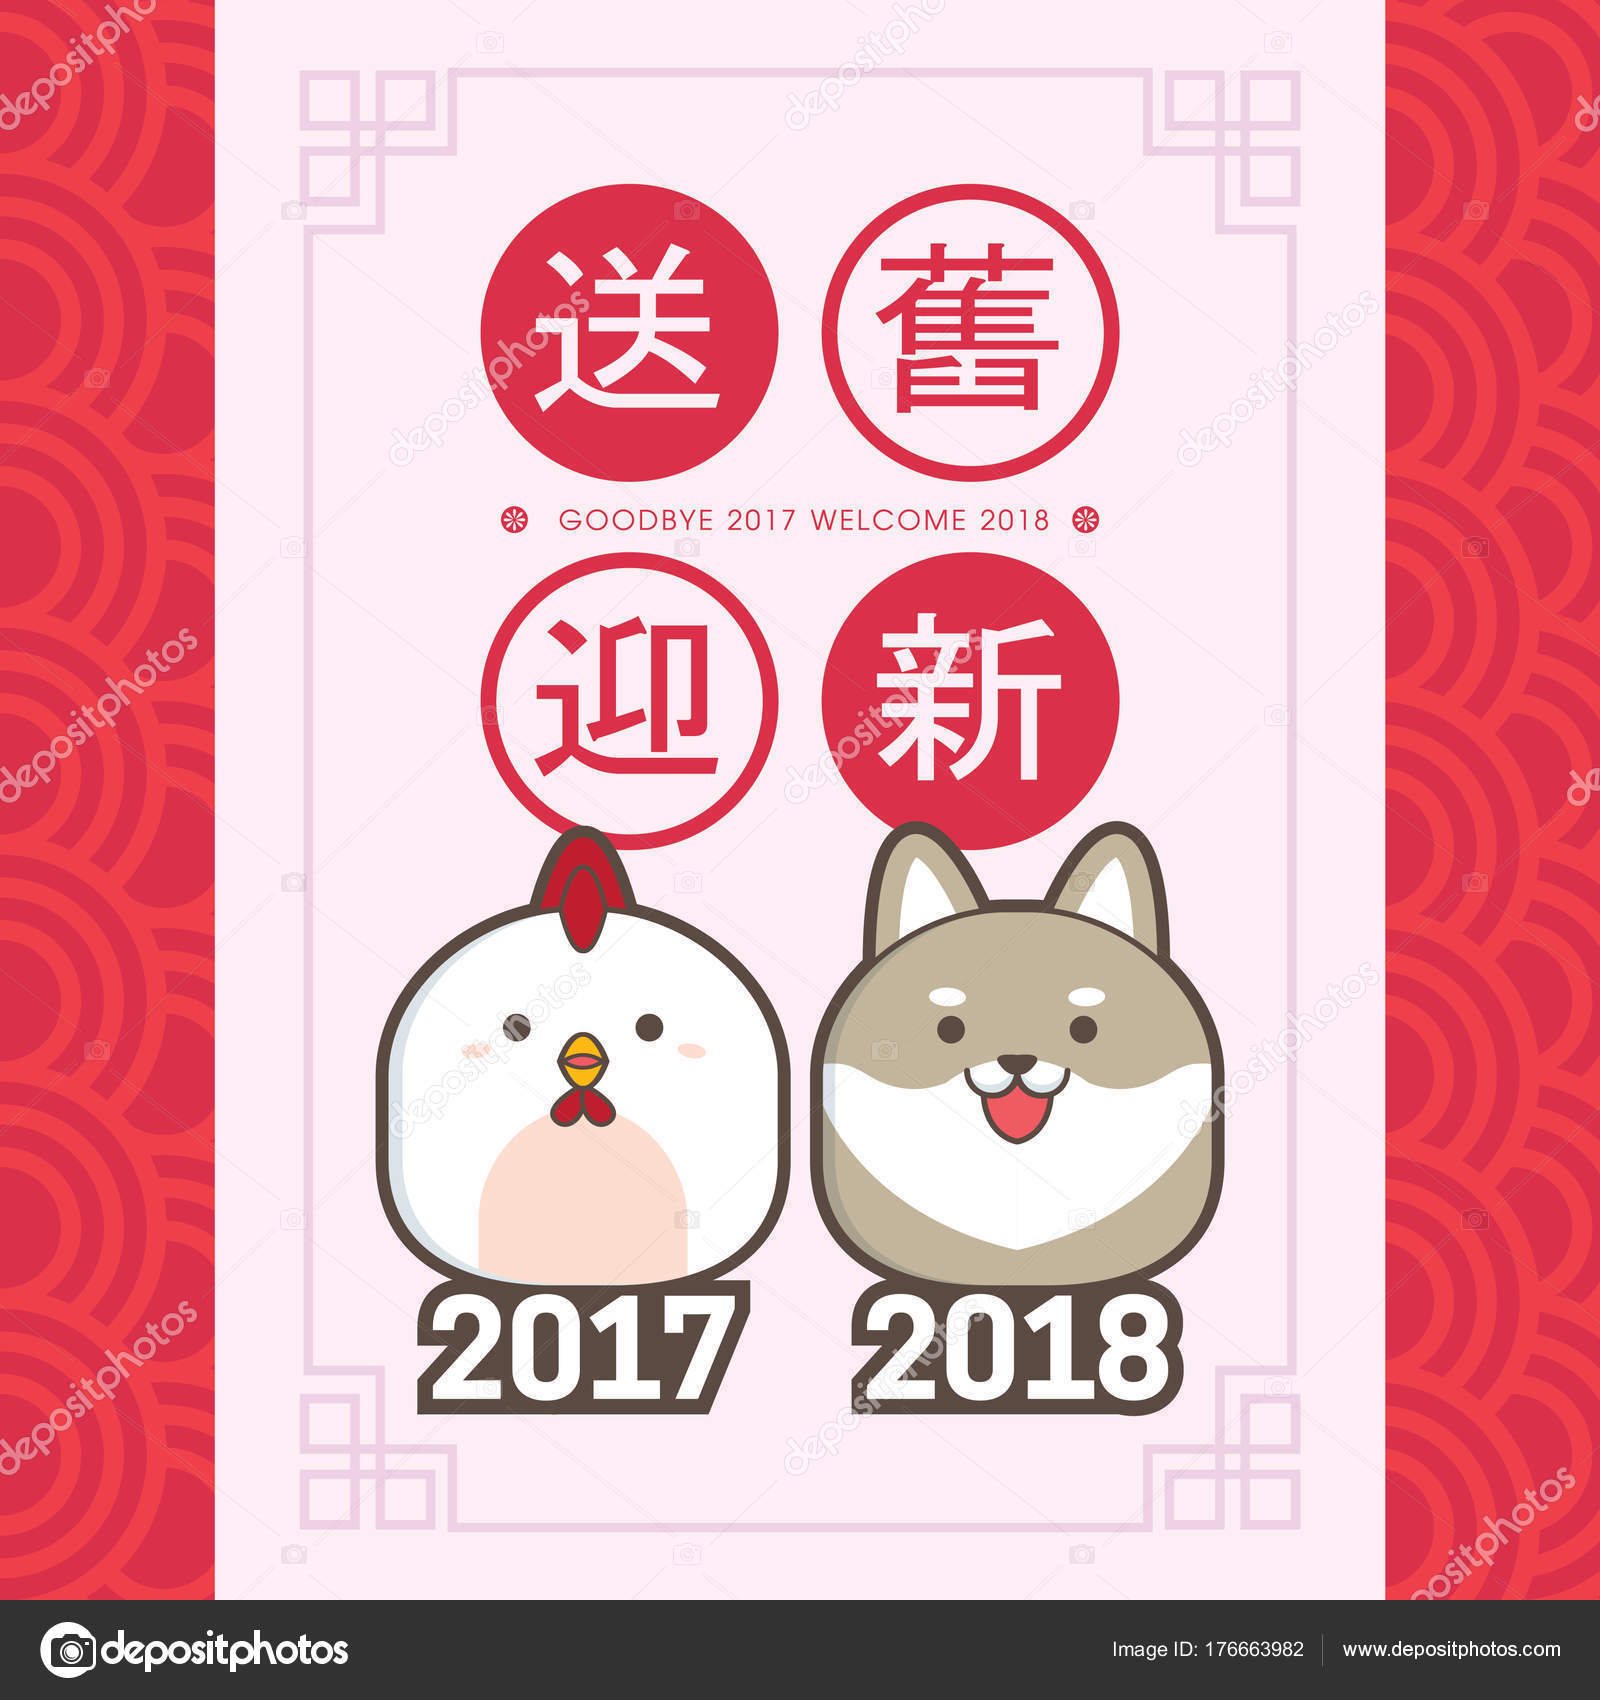 2018 chinese new year greeting card template cute chicken puppy 2018 chinese new year greeting card template cute chicken puppy stock vector m4hsunfo